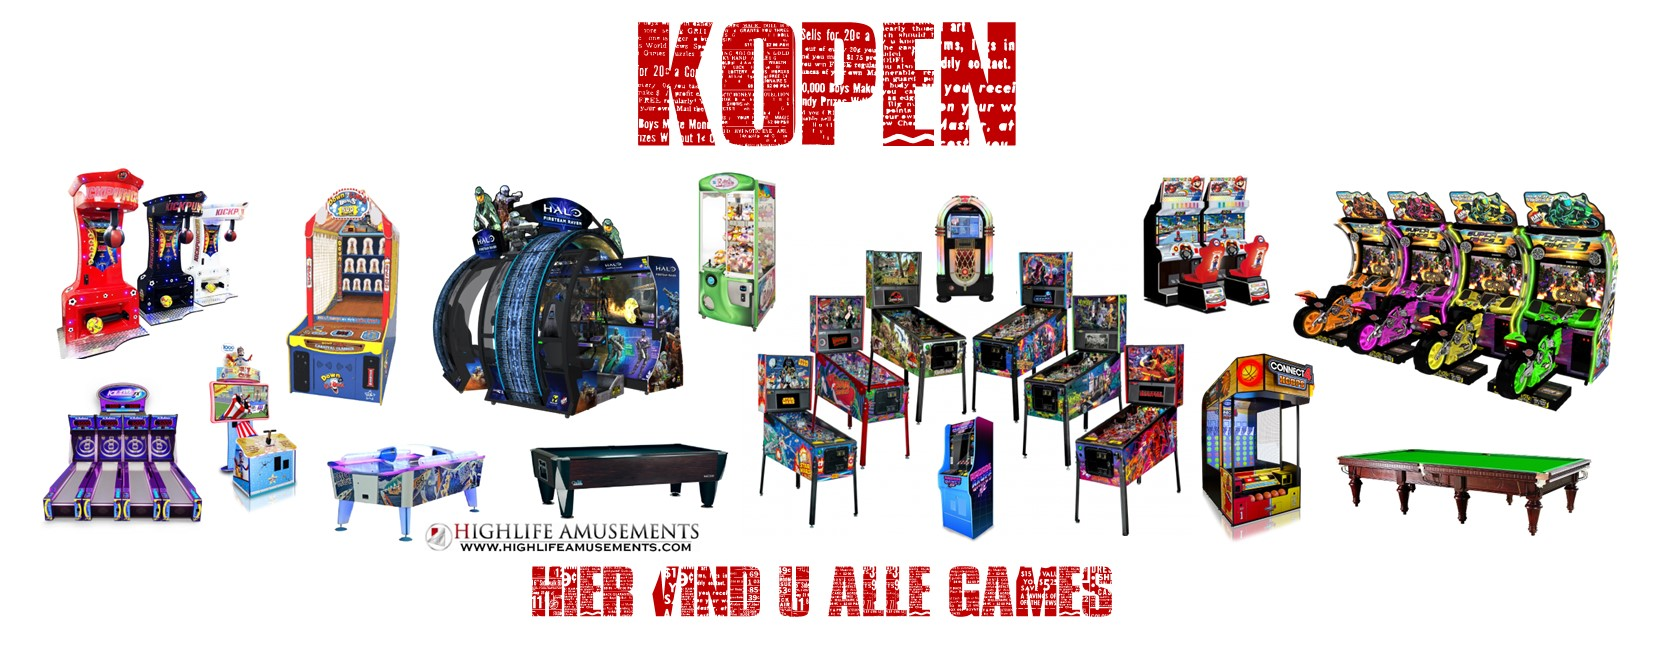 Amusement_games_airhockey_Grijpautomaat_Grijpmachine_boksautomaat_boxmachine_racegame_pinball_kopen_buy_rent_redemption_poolbilliard_webshop_pinballs_flipper_arcade_mancave_home games